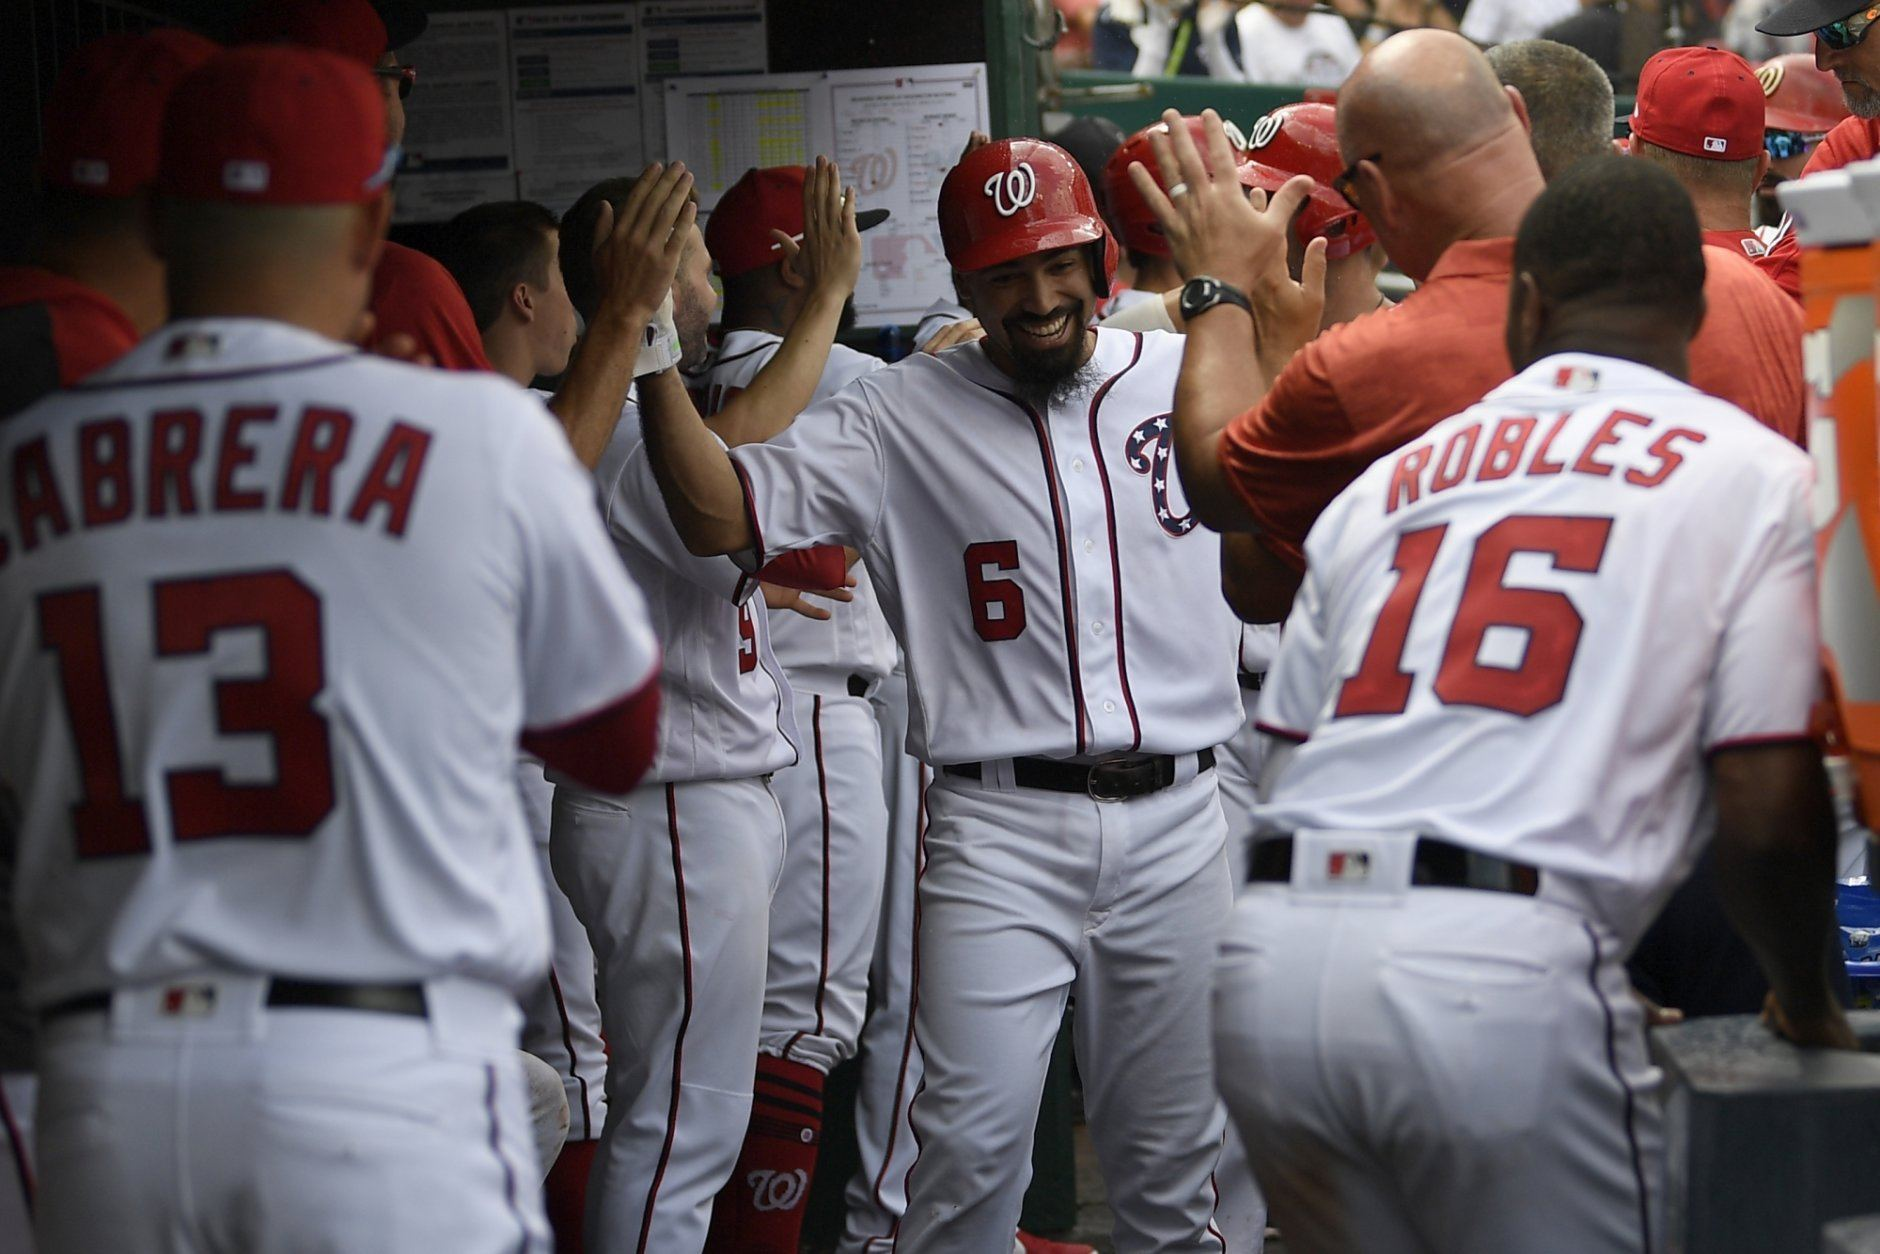 Washington Nationals' Anthony Rendon (6) celebrates his three-run home run in the dugout during the third inning of a baseball game against the Milwaukee Brewers, Sunday, Aug. 18, 2019, in Washington. (AP Photo/Nick Wass)